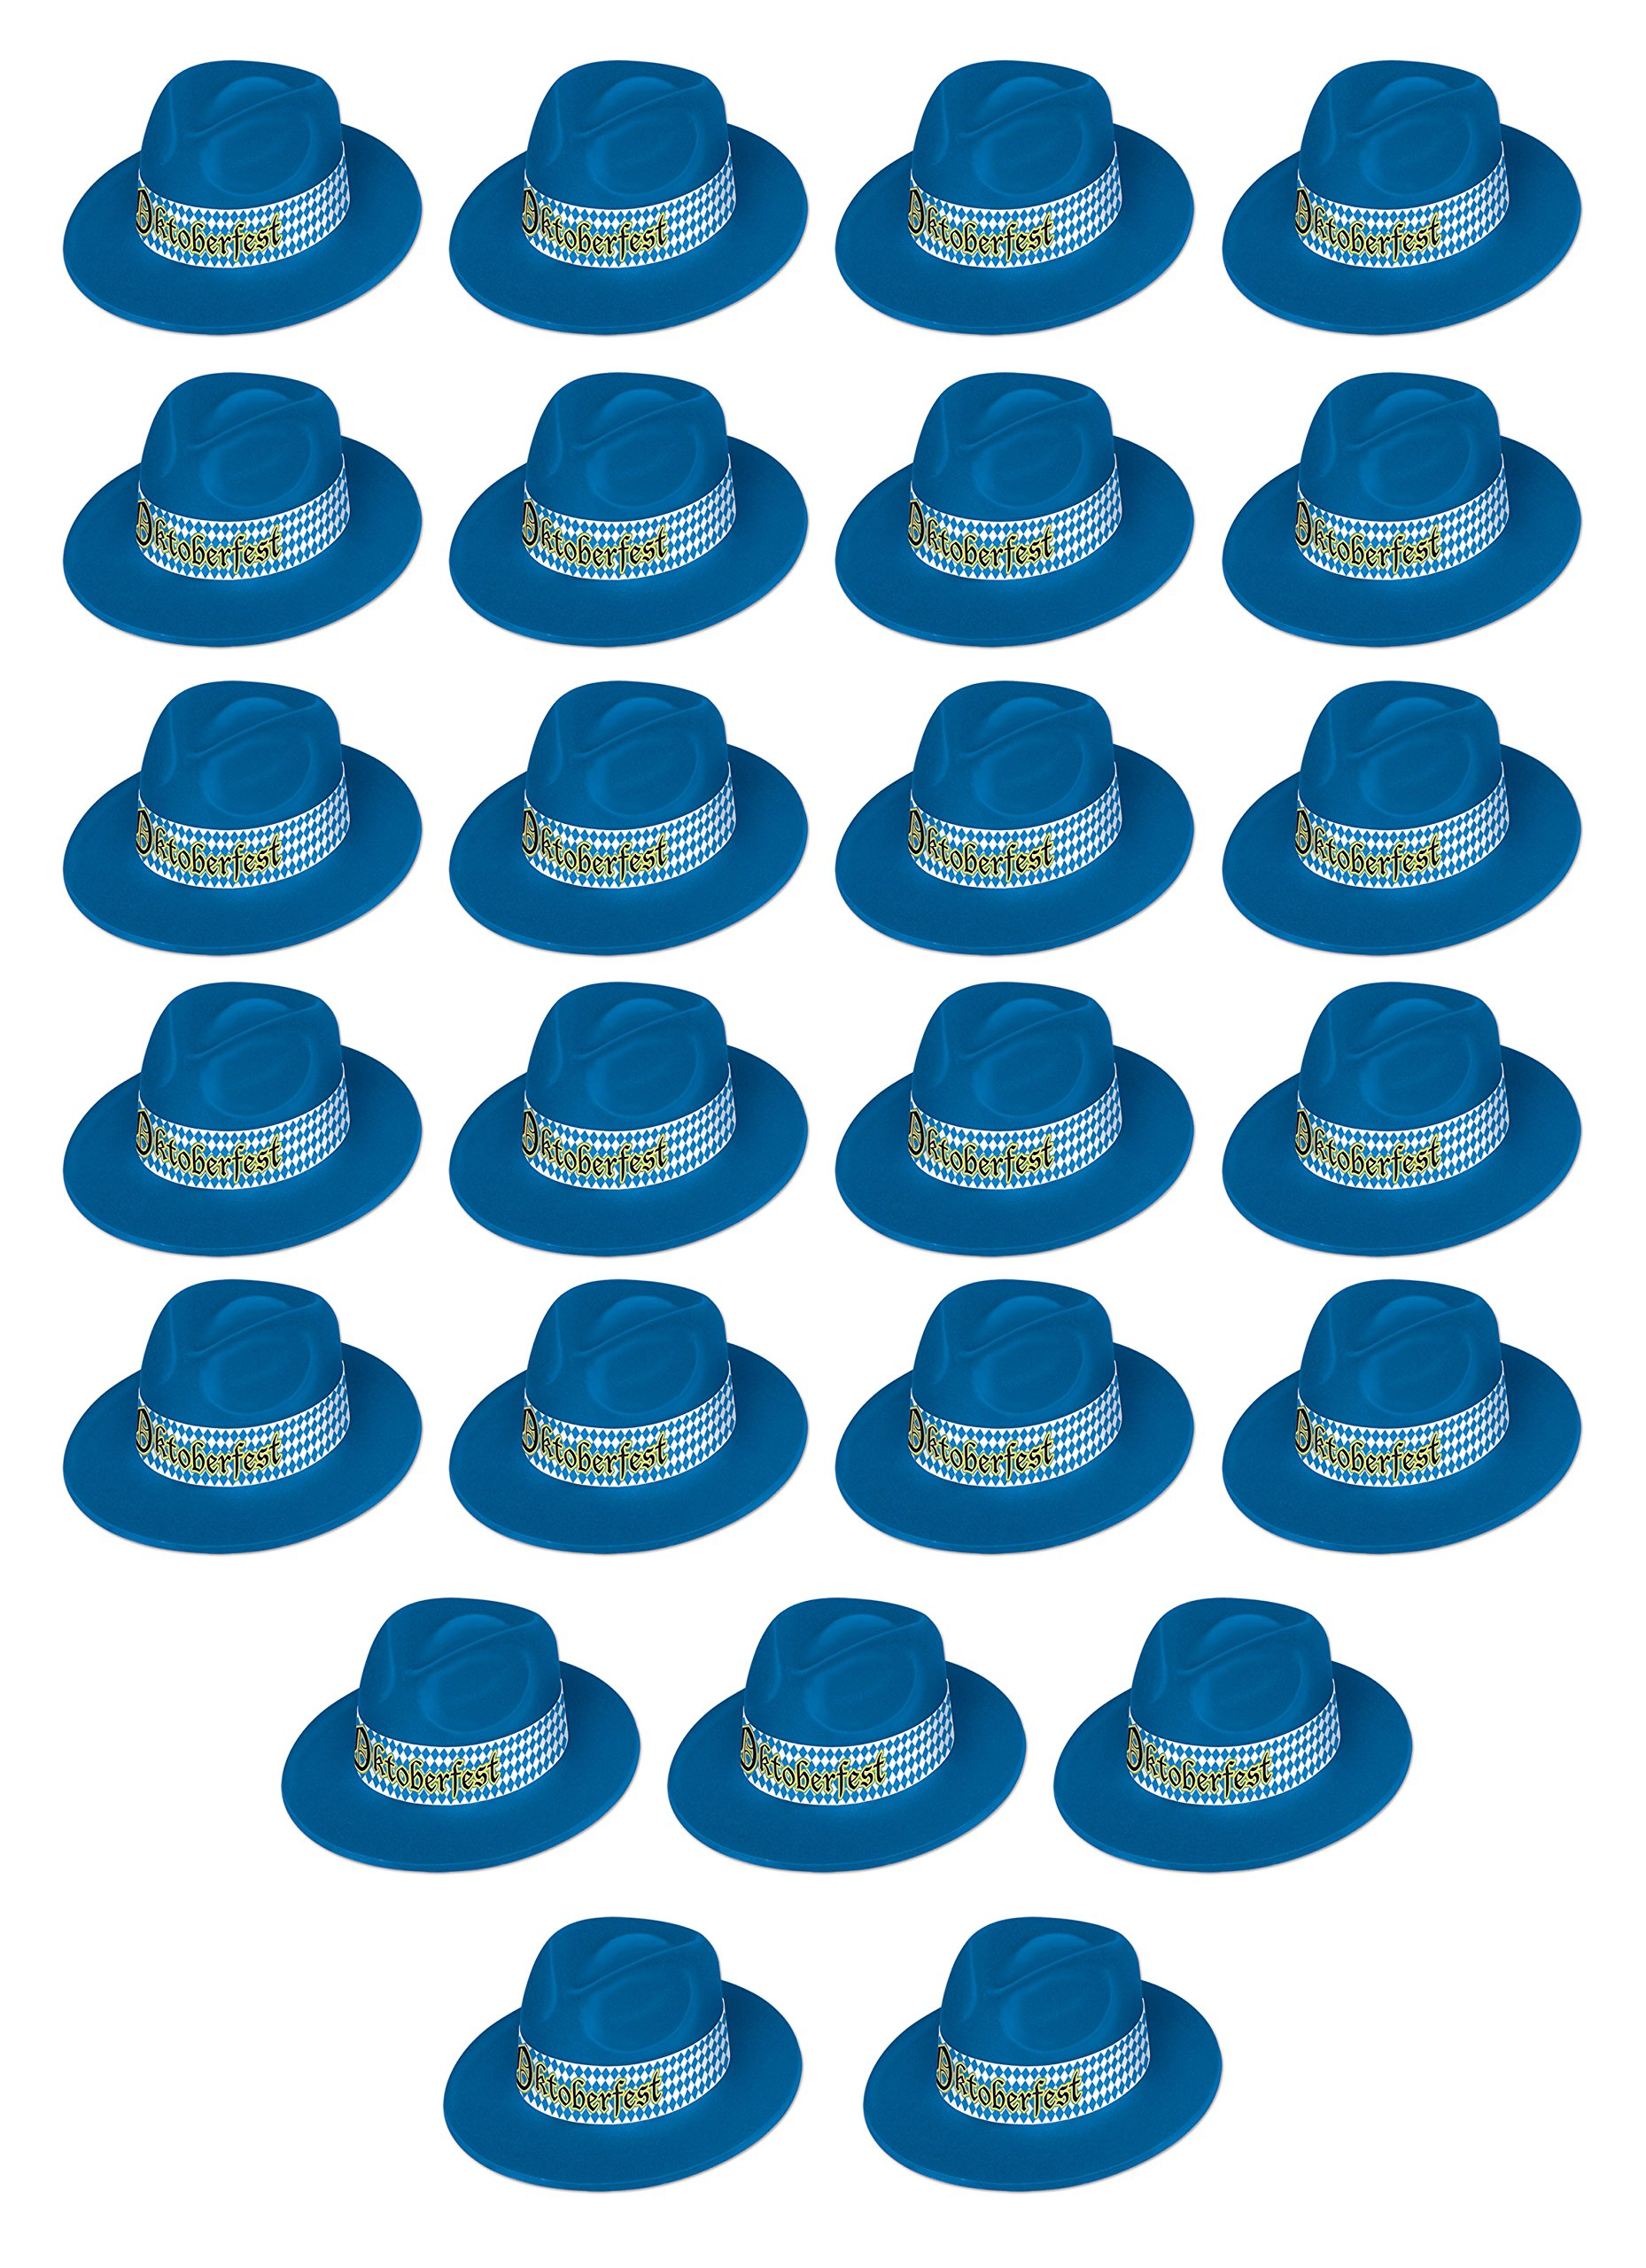 Beistle 60881-25 25 Piece Oktoberfest Fedora, Multicolor by Beistle